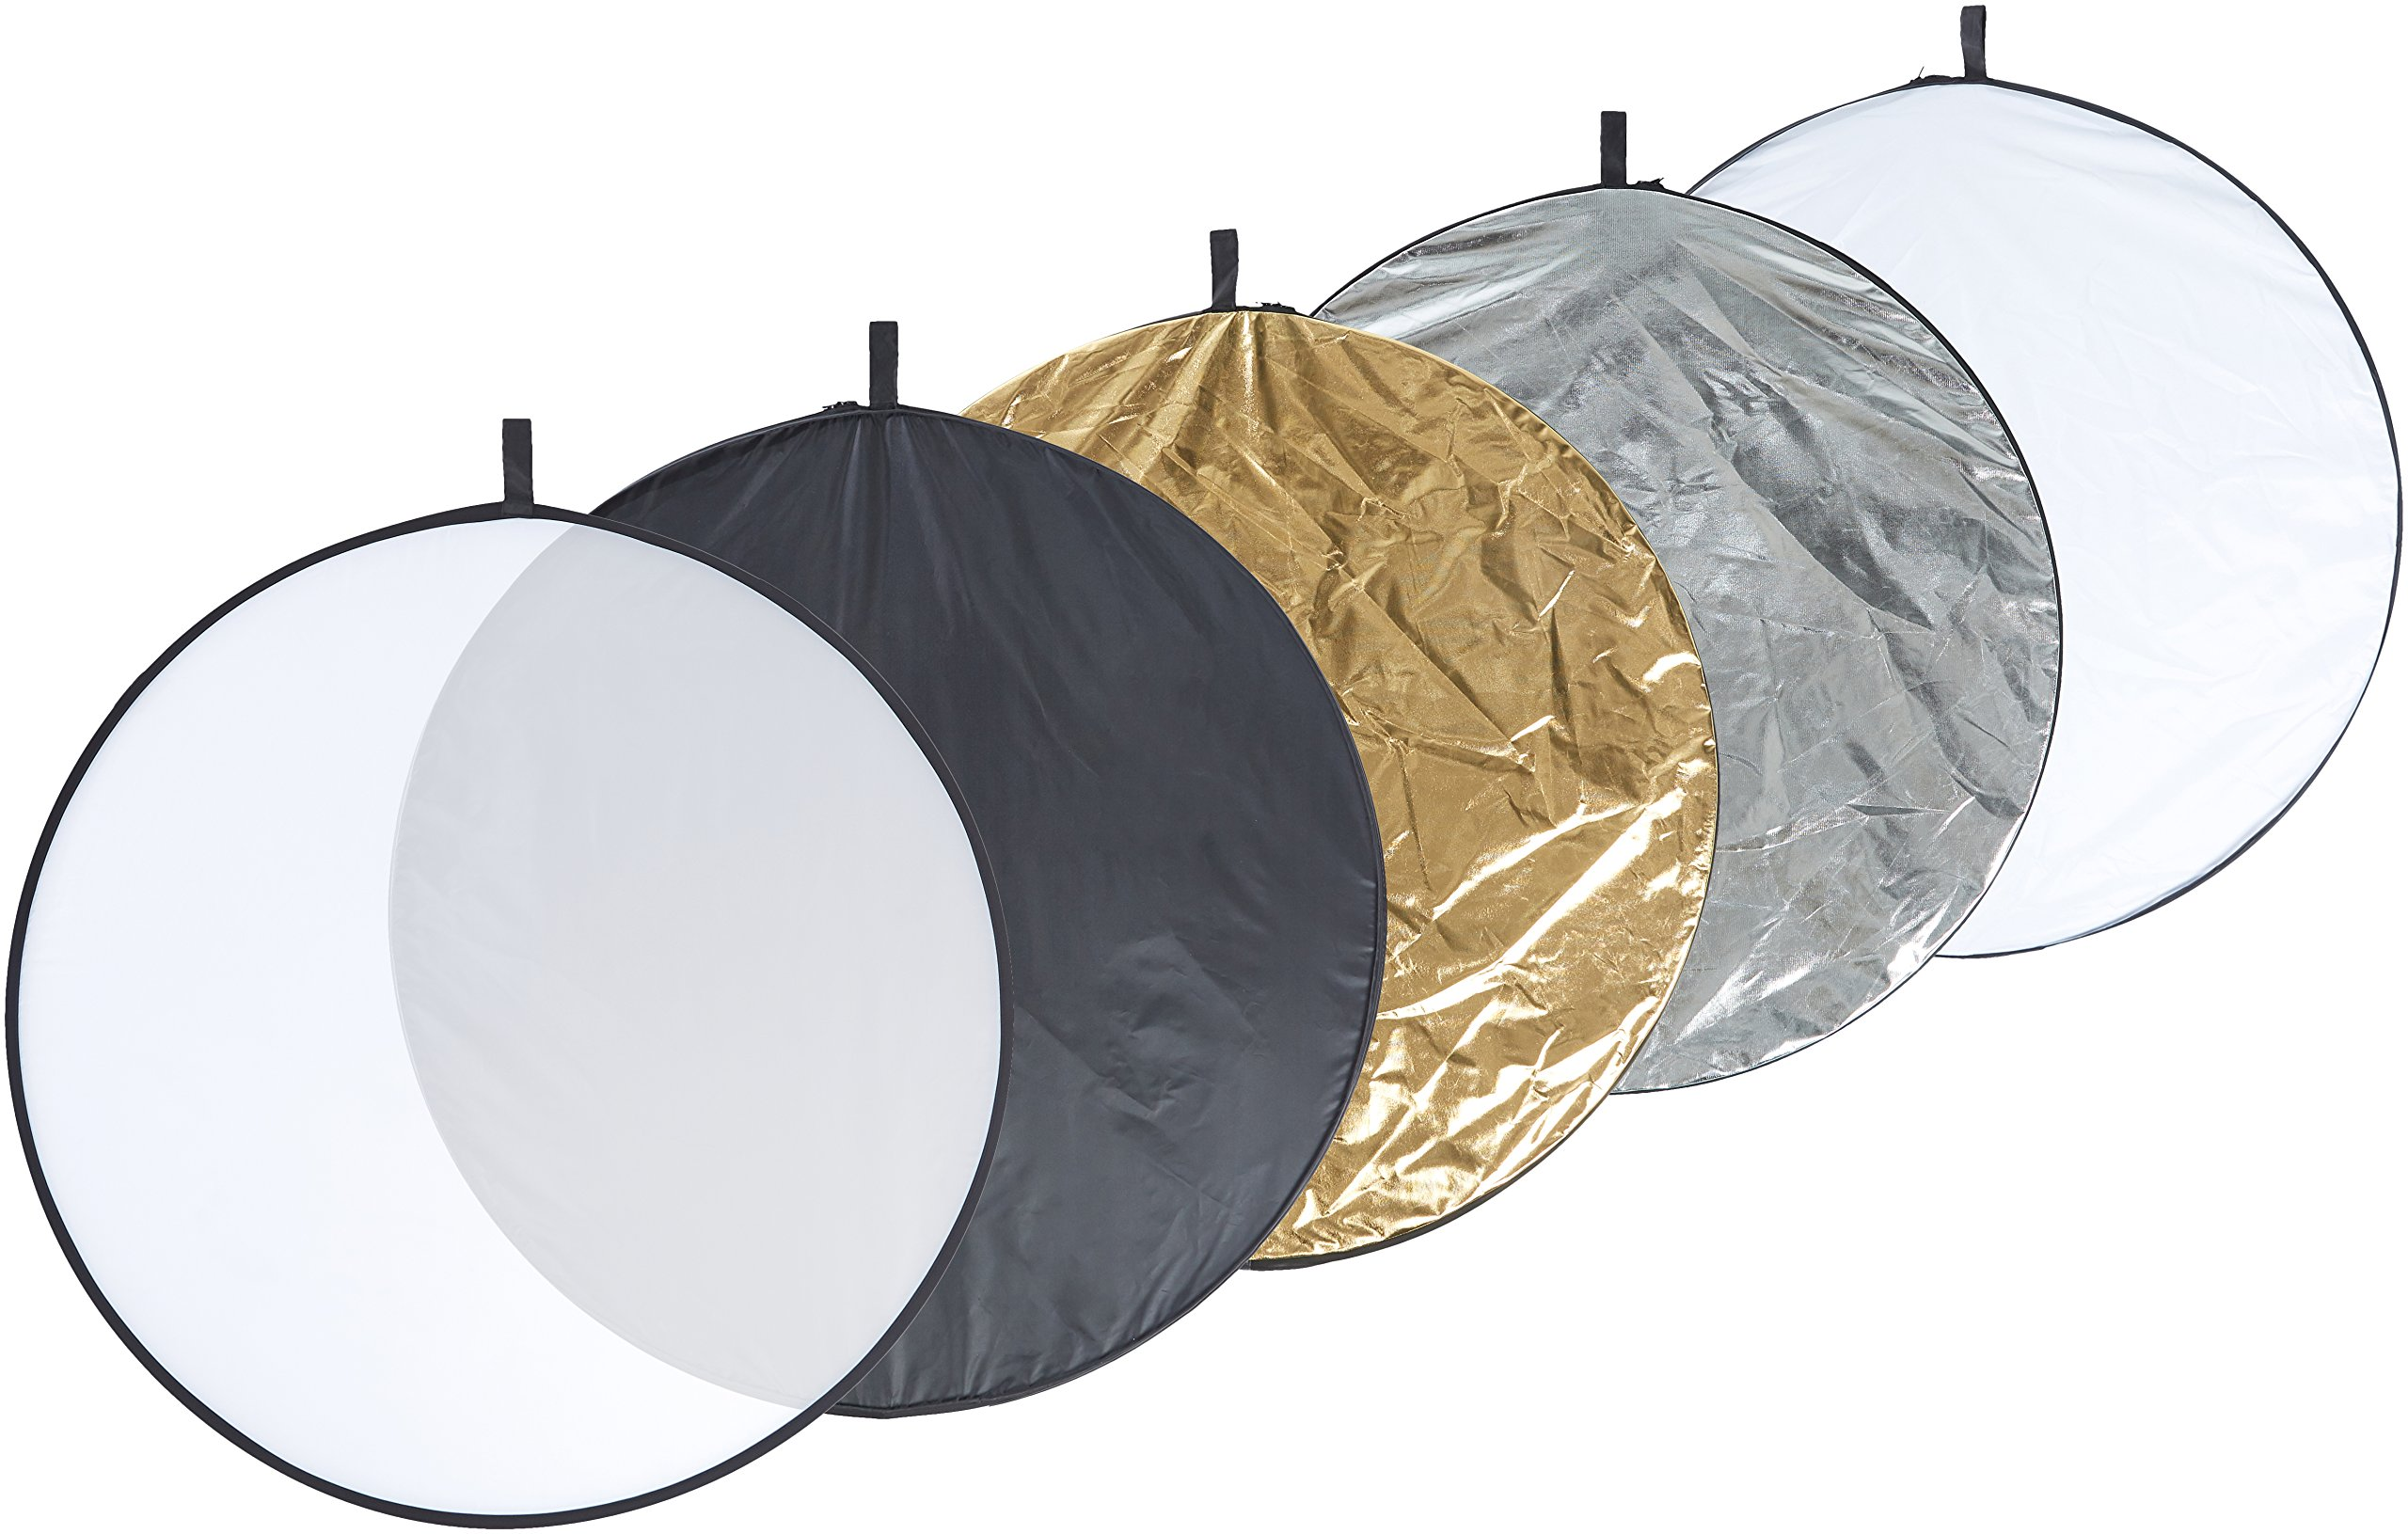 AmazonBasics 43-Inch 5-1 Collapsible Multi-Disc Light Reflector with bag